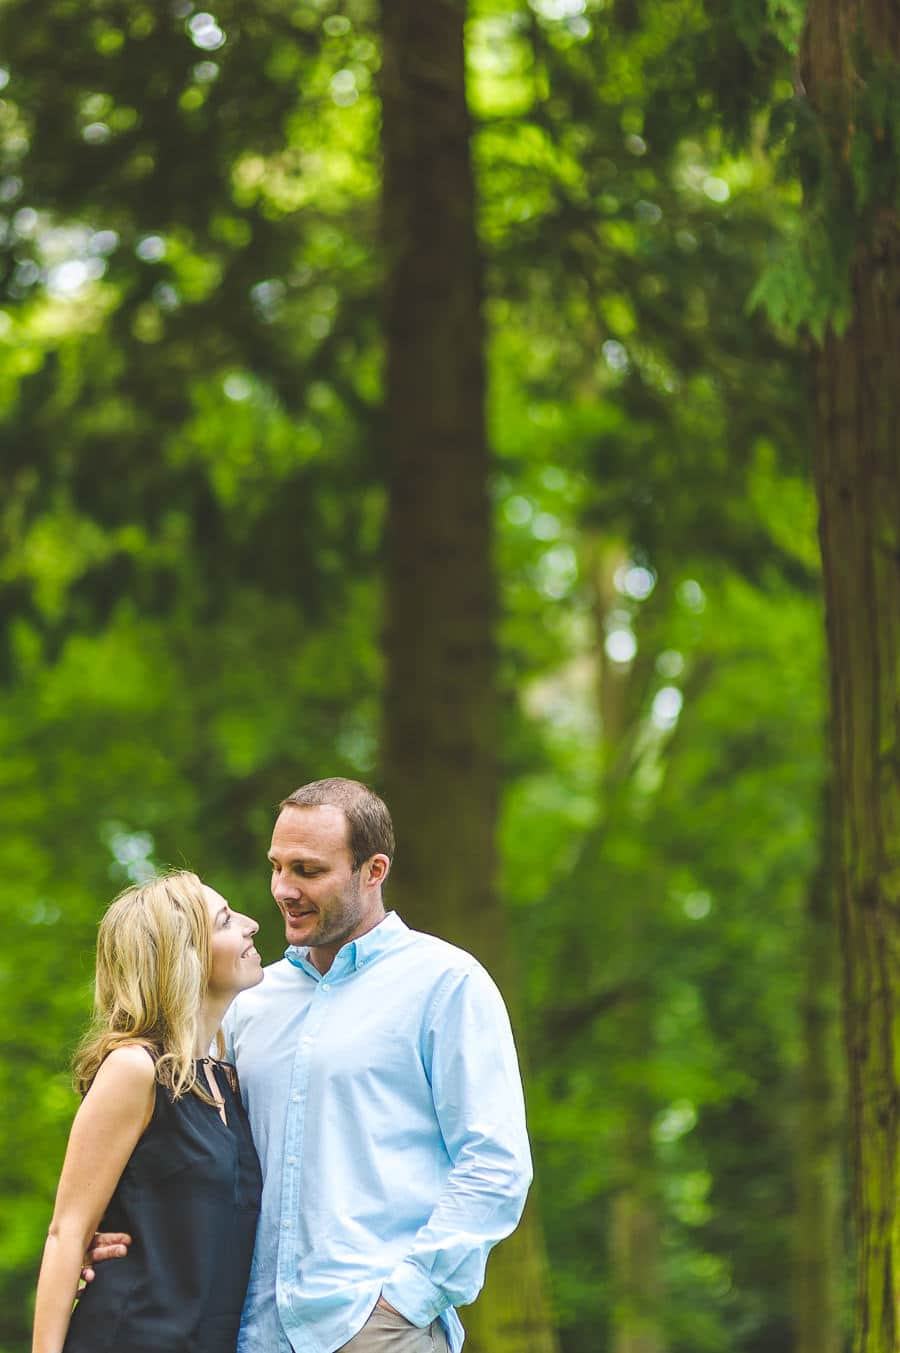 JL3 1748 - Louise & Nick's Pre Wedding Photography @ Eastnor Castle Ledbury | Herefordshire Photographers